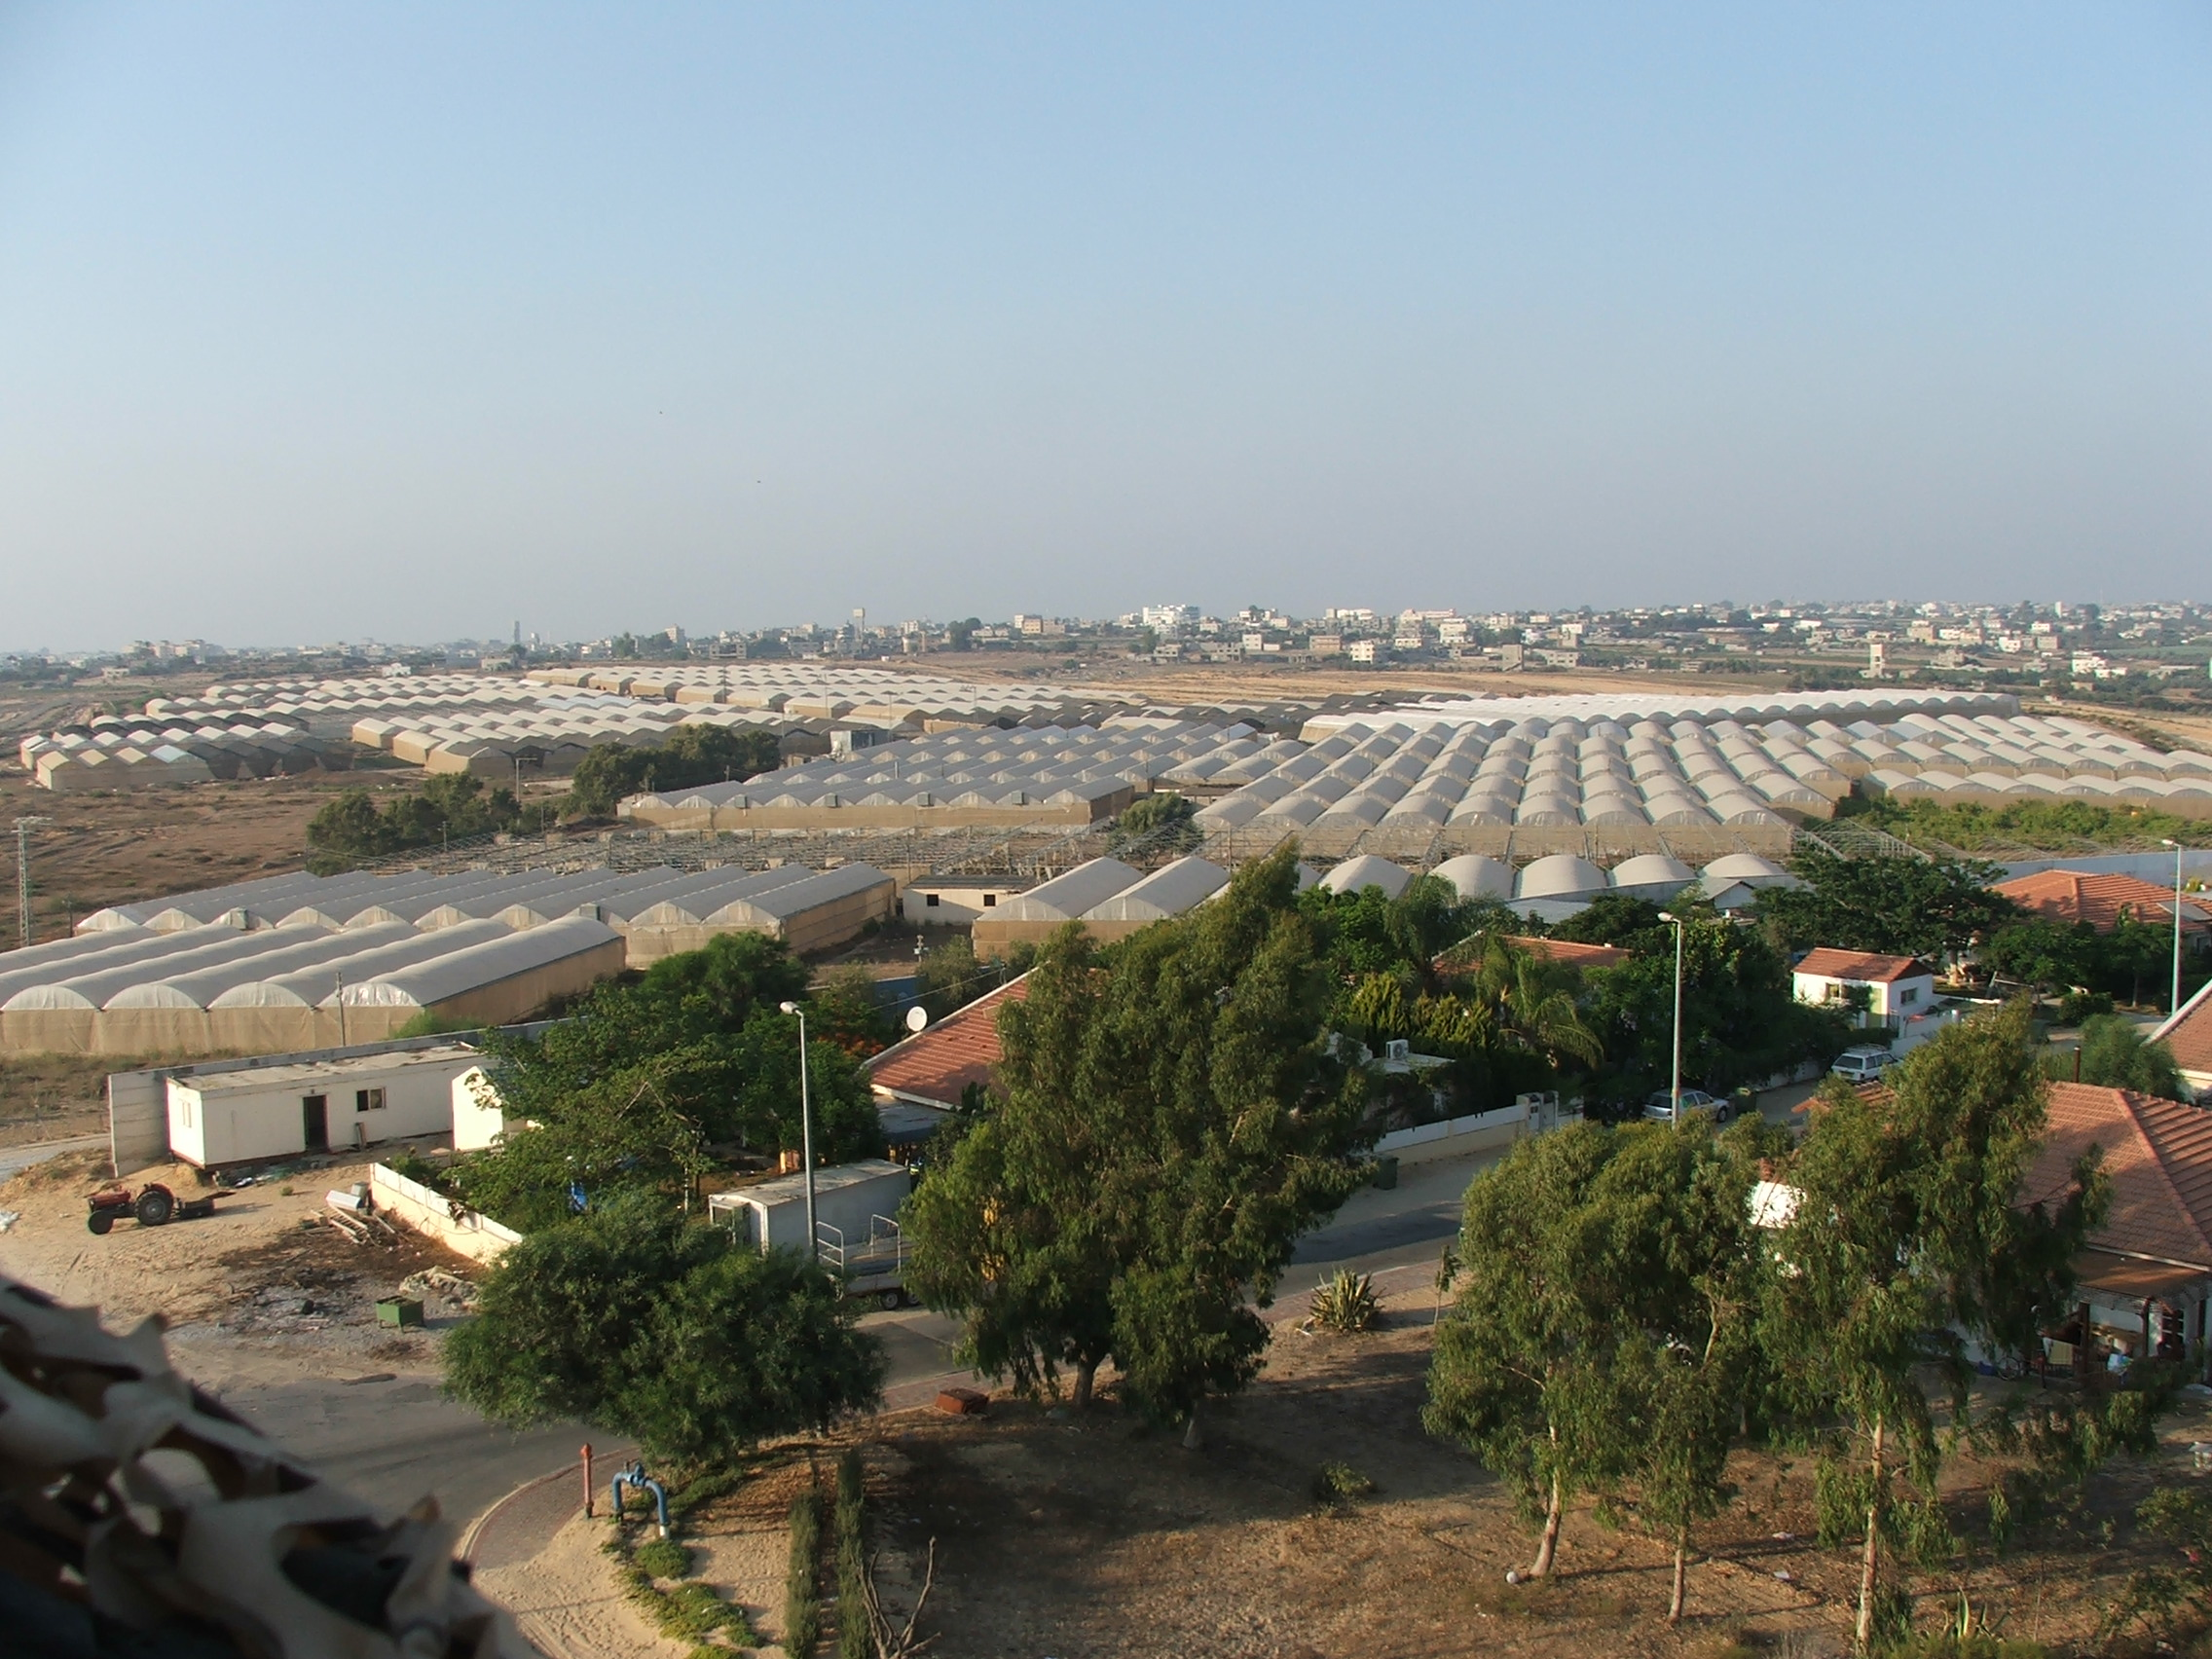 Israeli farming community in Gaza before the pull-out.